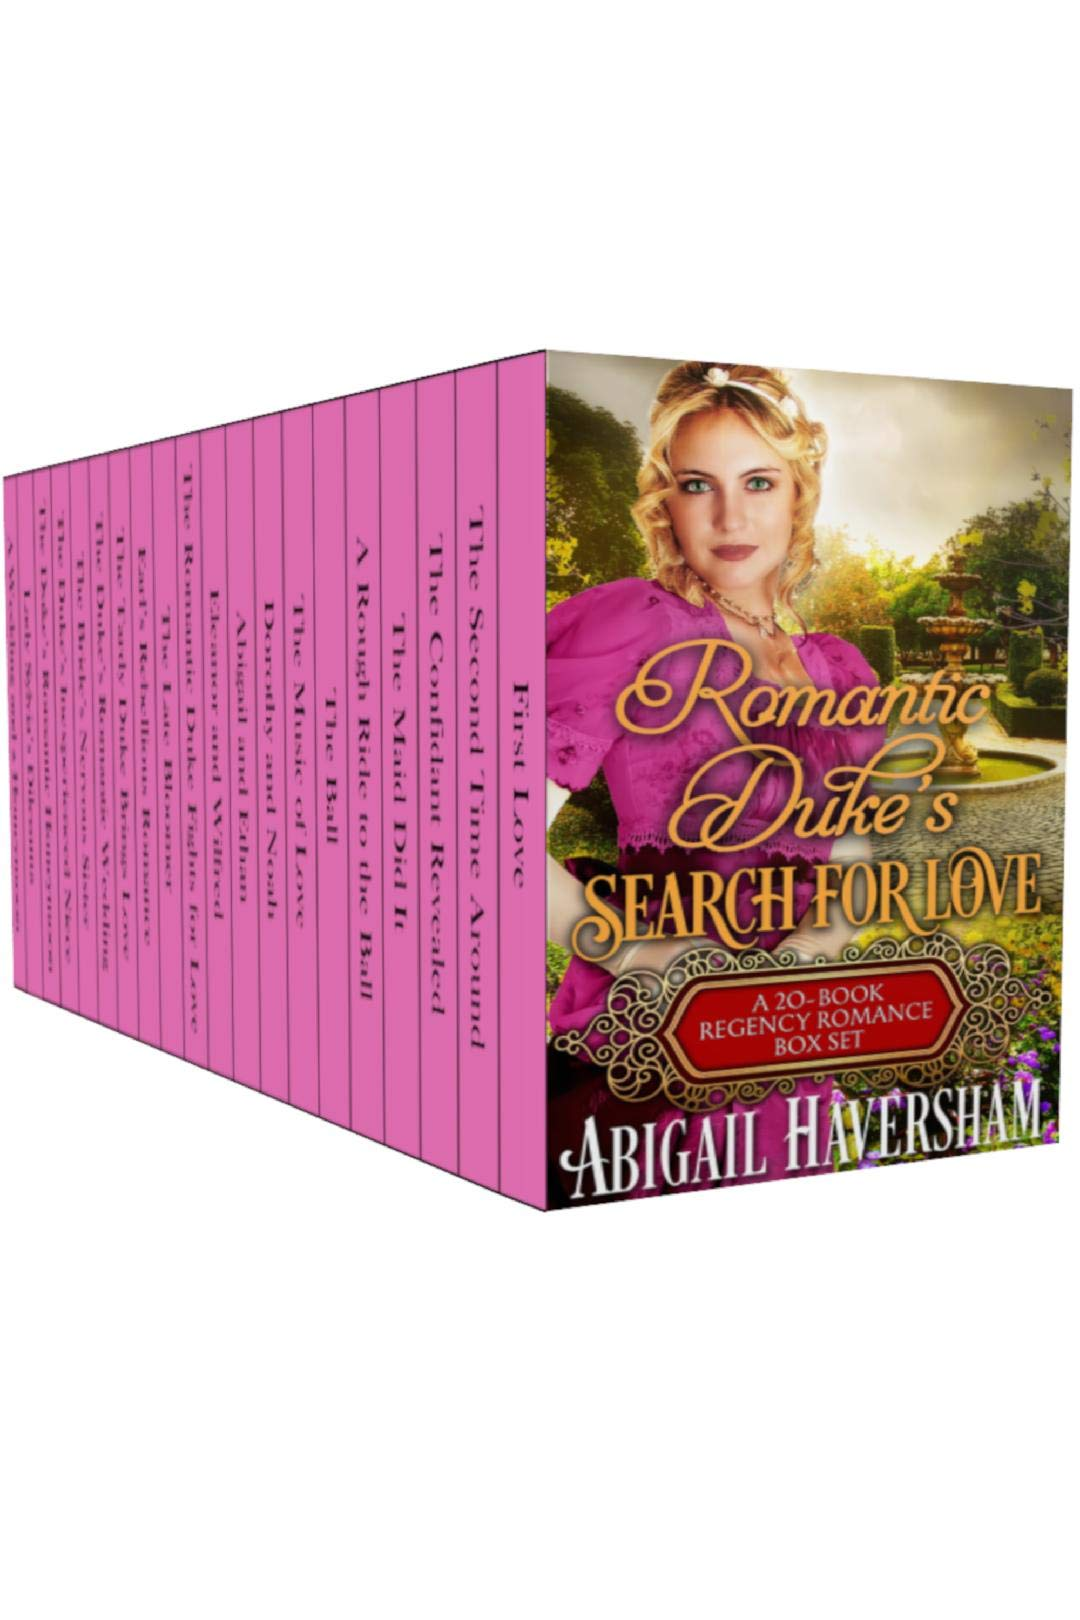 Romantic Duke's Search For Love  A 20 Book Regency Romance Box Set   English Edition